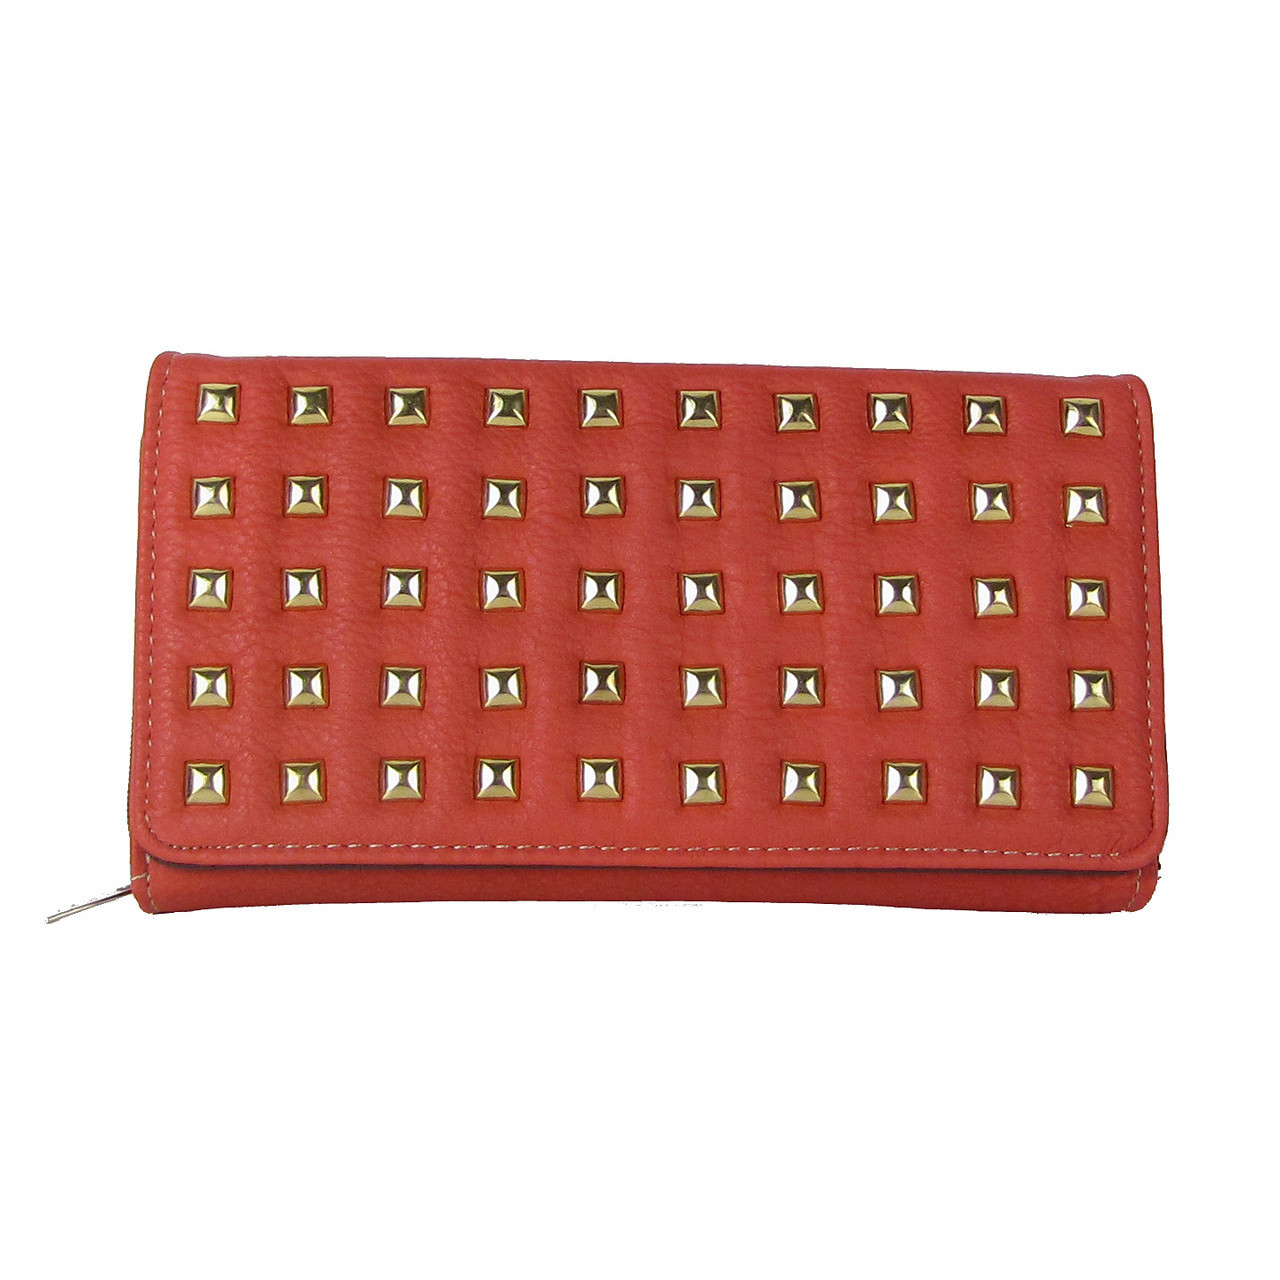 PINK STUDDED LEATHERETTE LOOK CHECKBOOK WALLET CB1-1209PNK